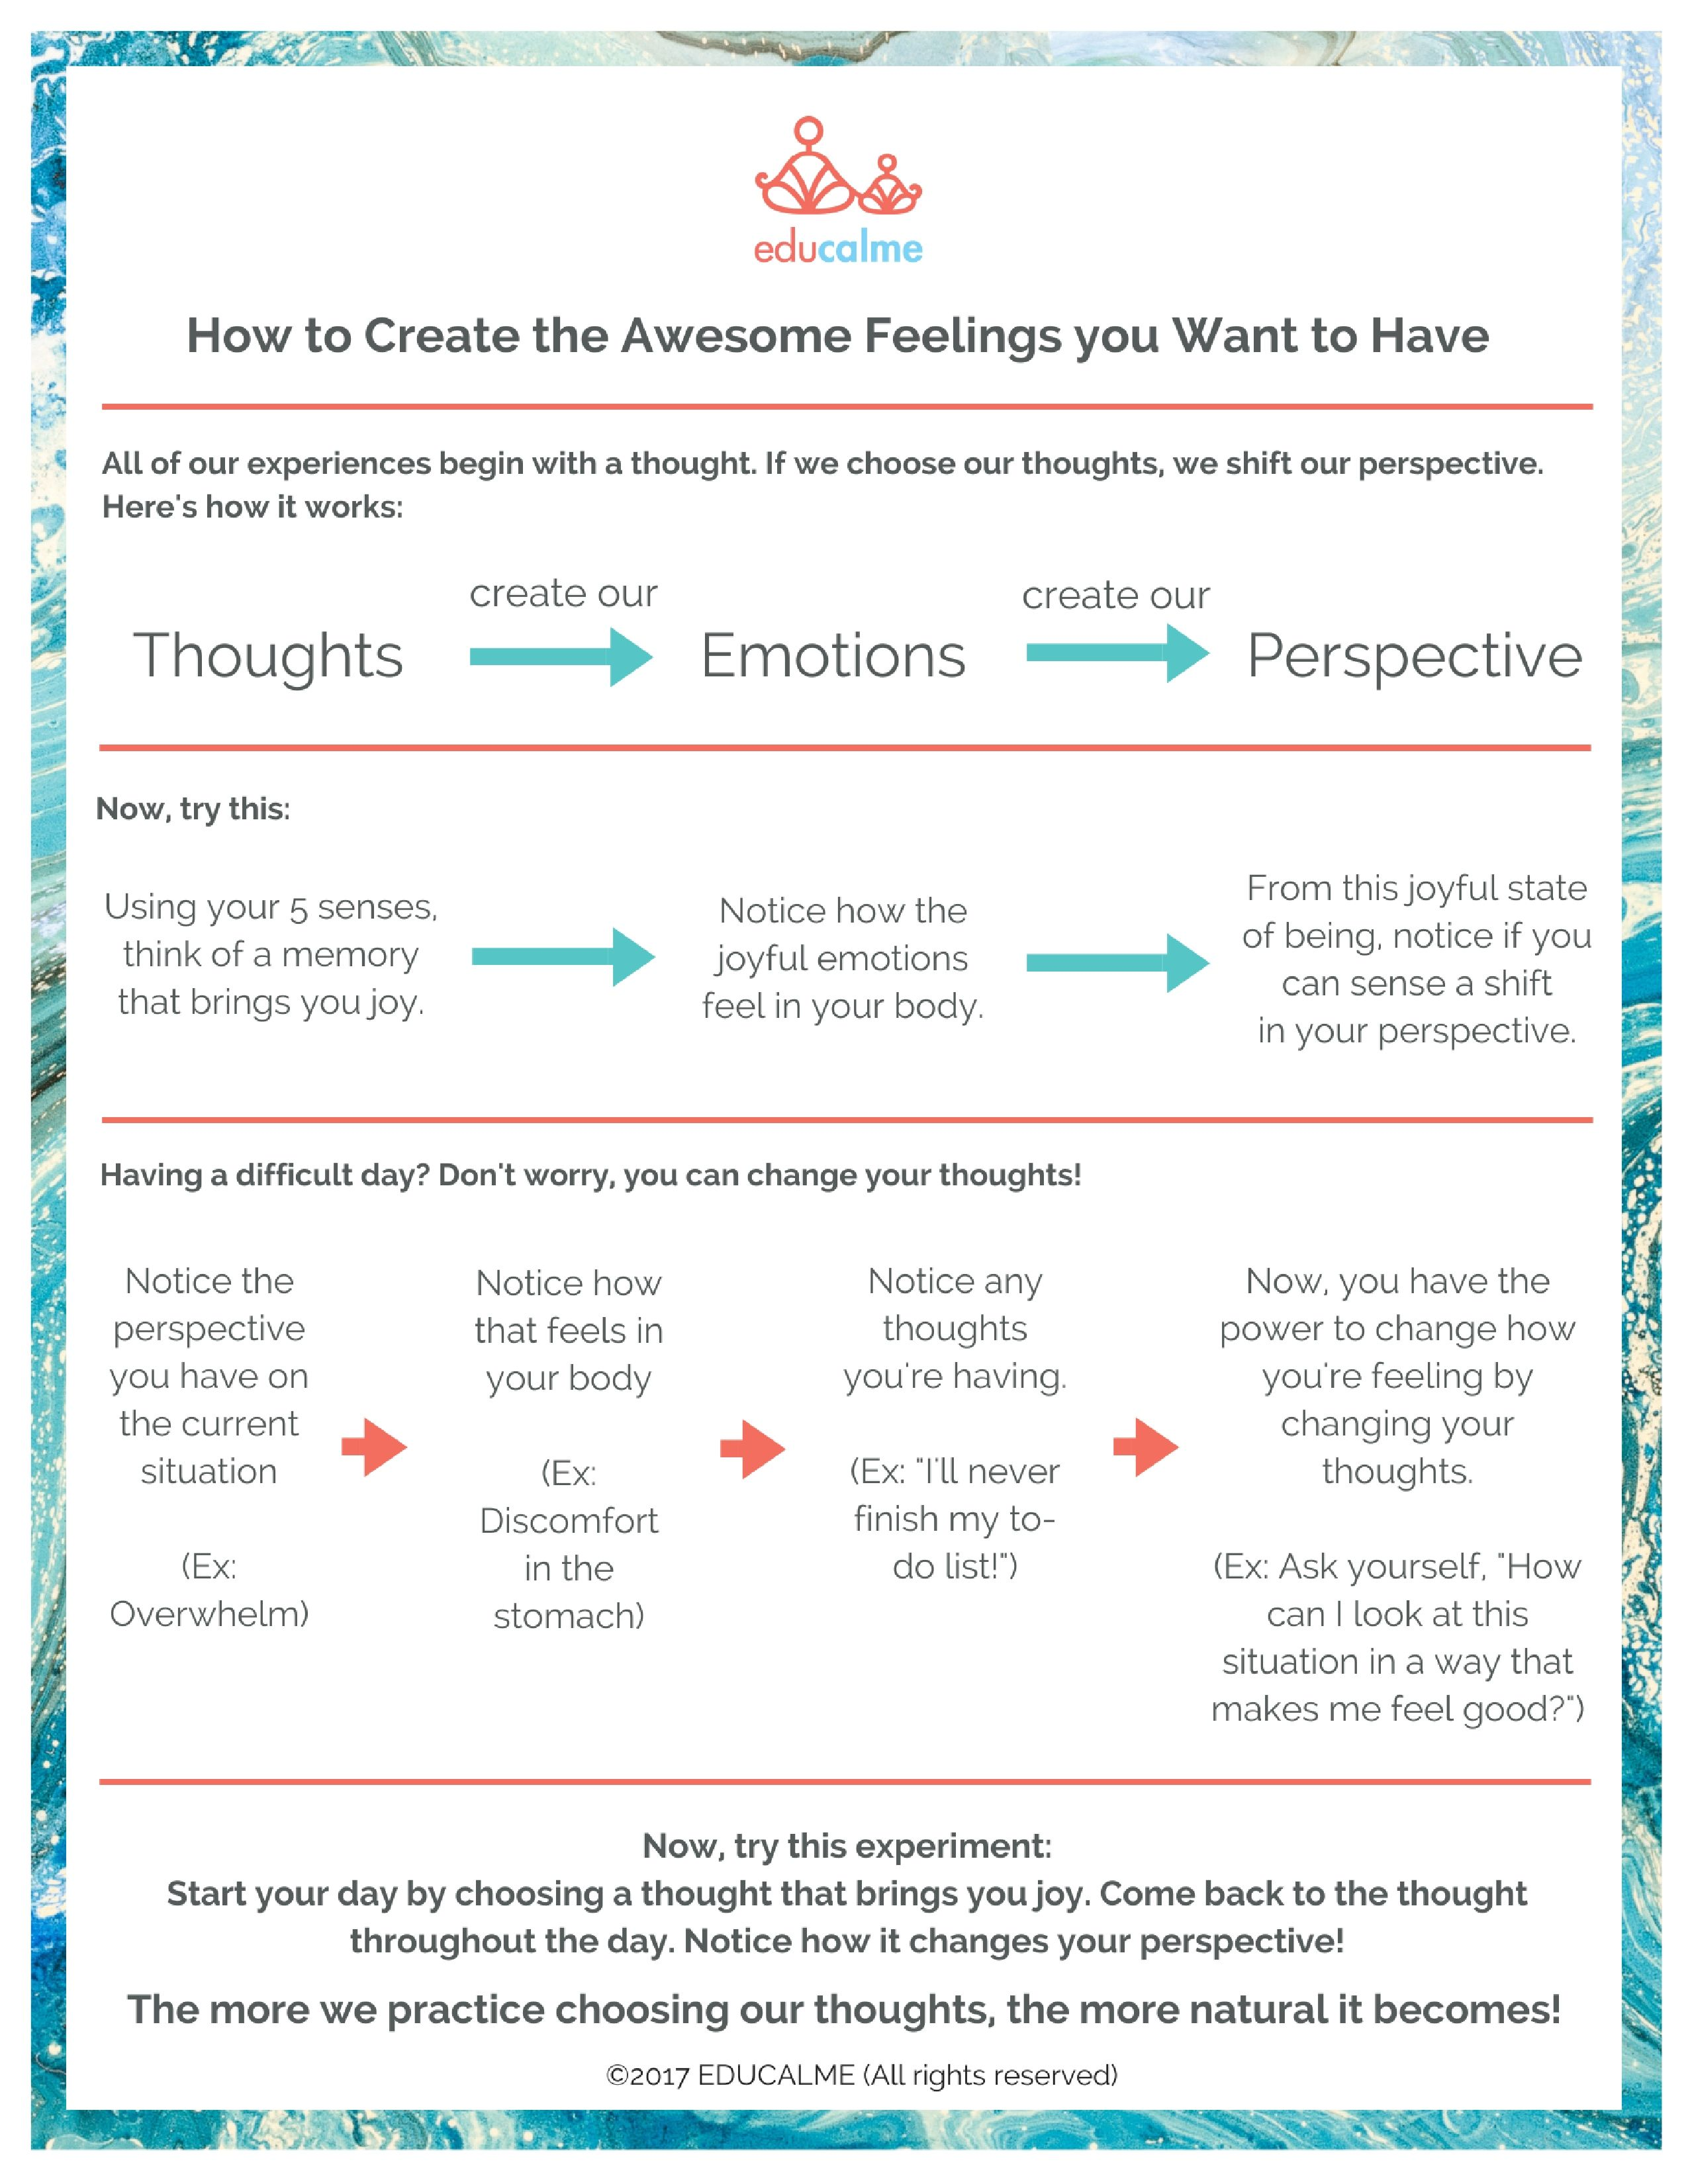 How To Create The Awesome Feelings You Want To Have In